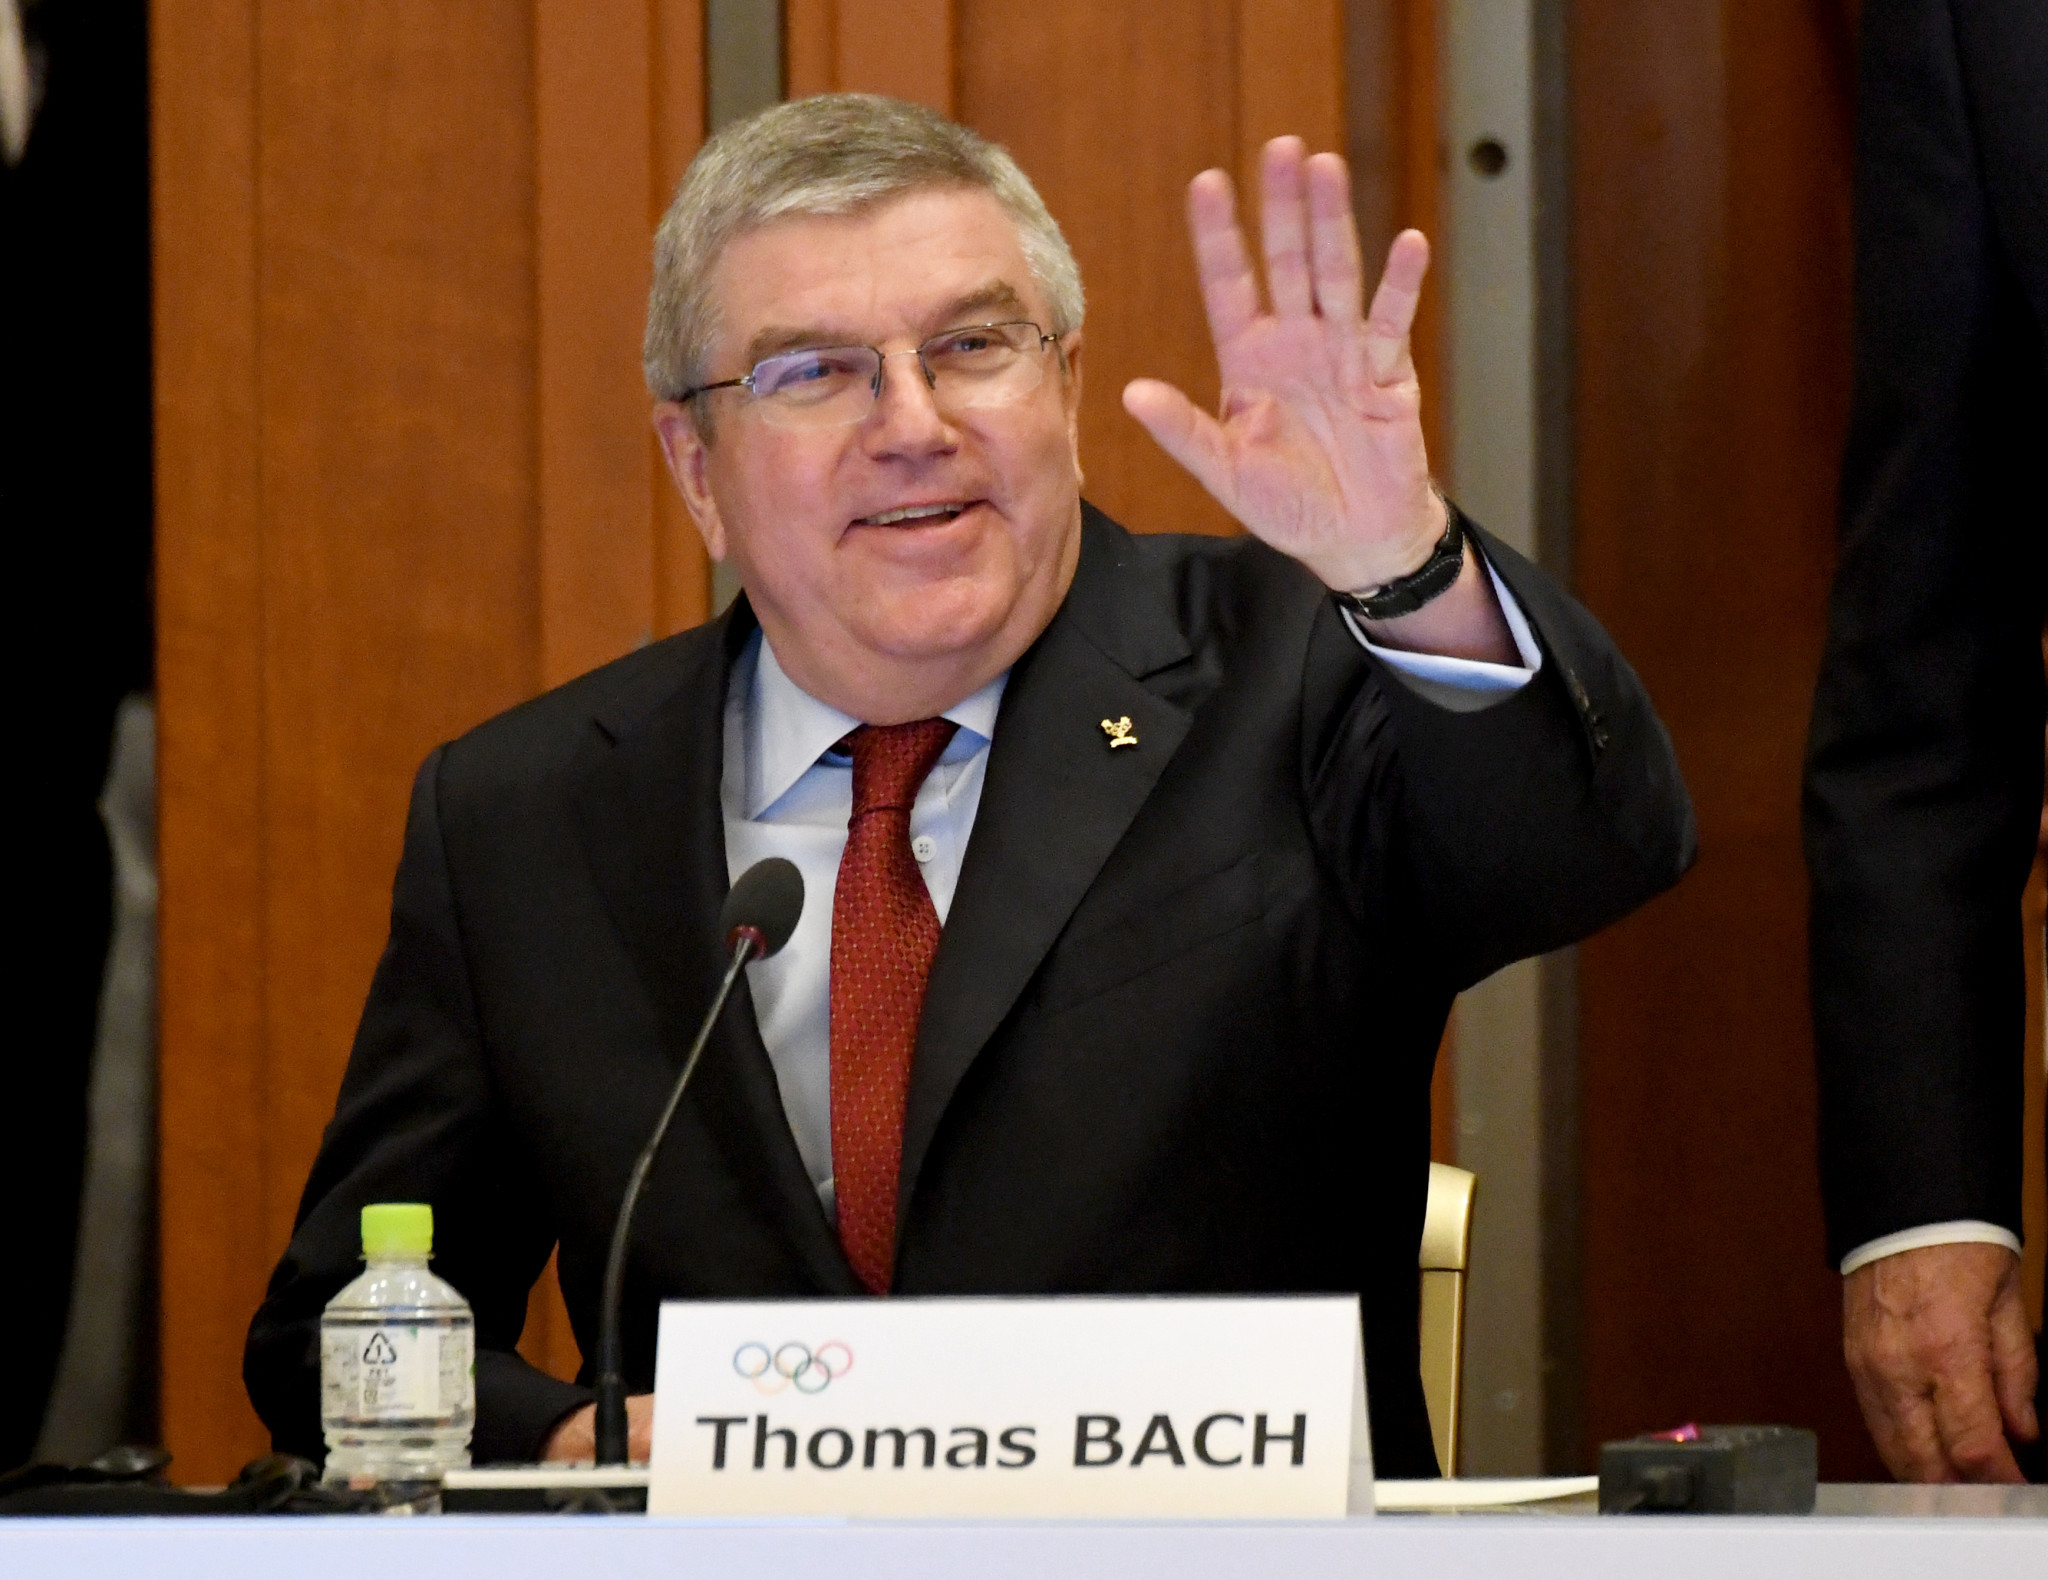 Bach hails unity of Japanese people and progress of Tokyo 2020 as Coordination Commission visit begins